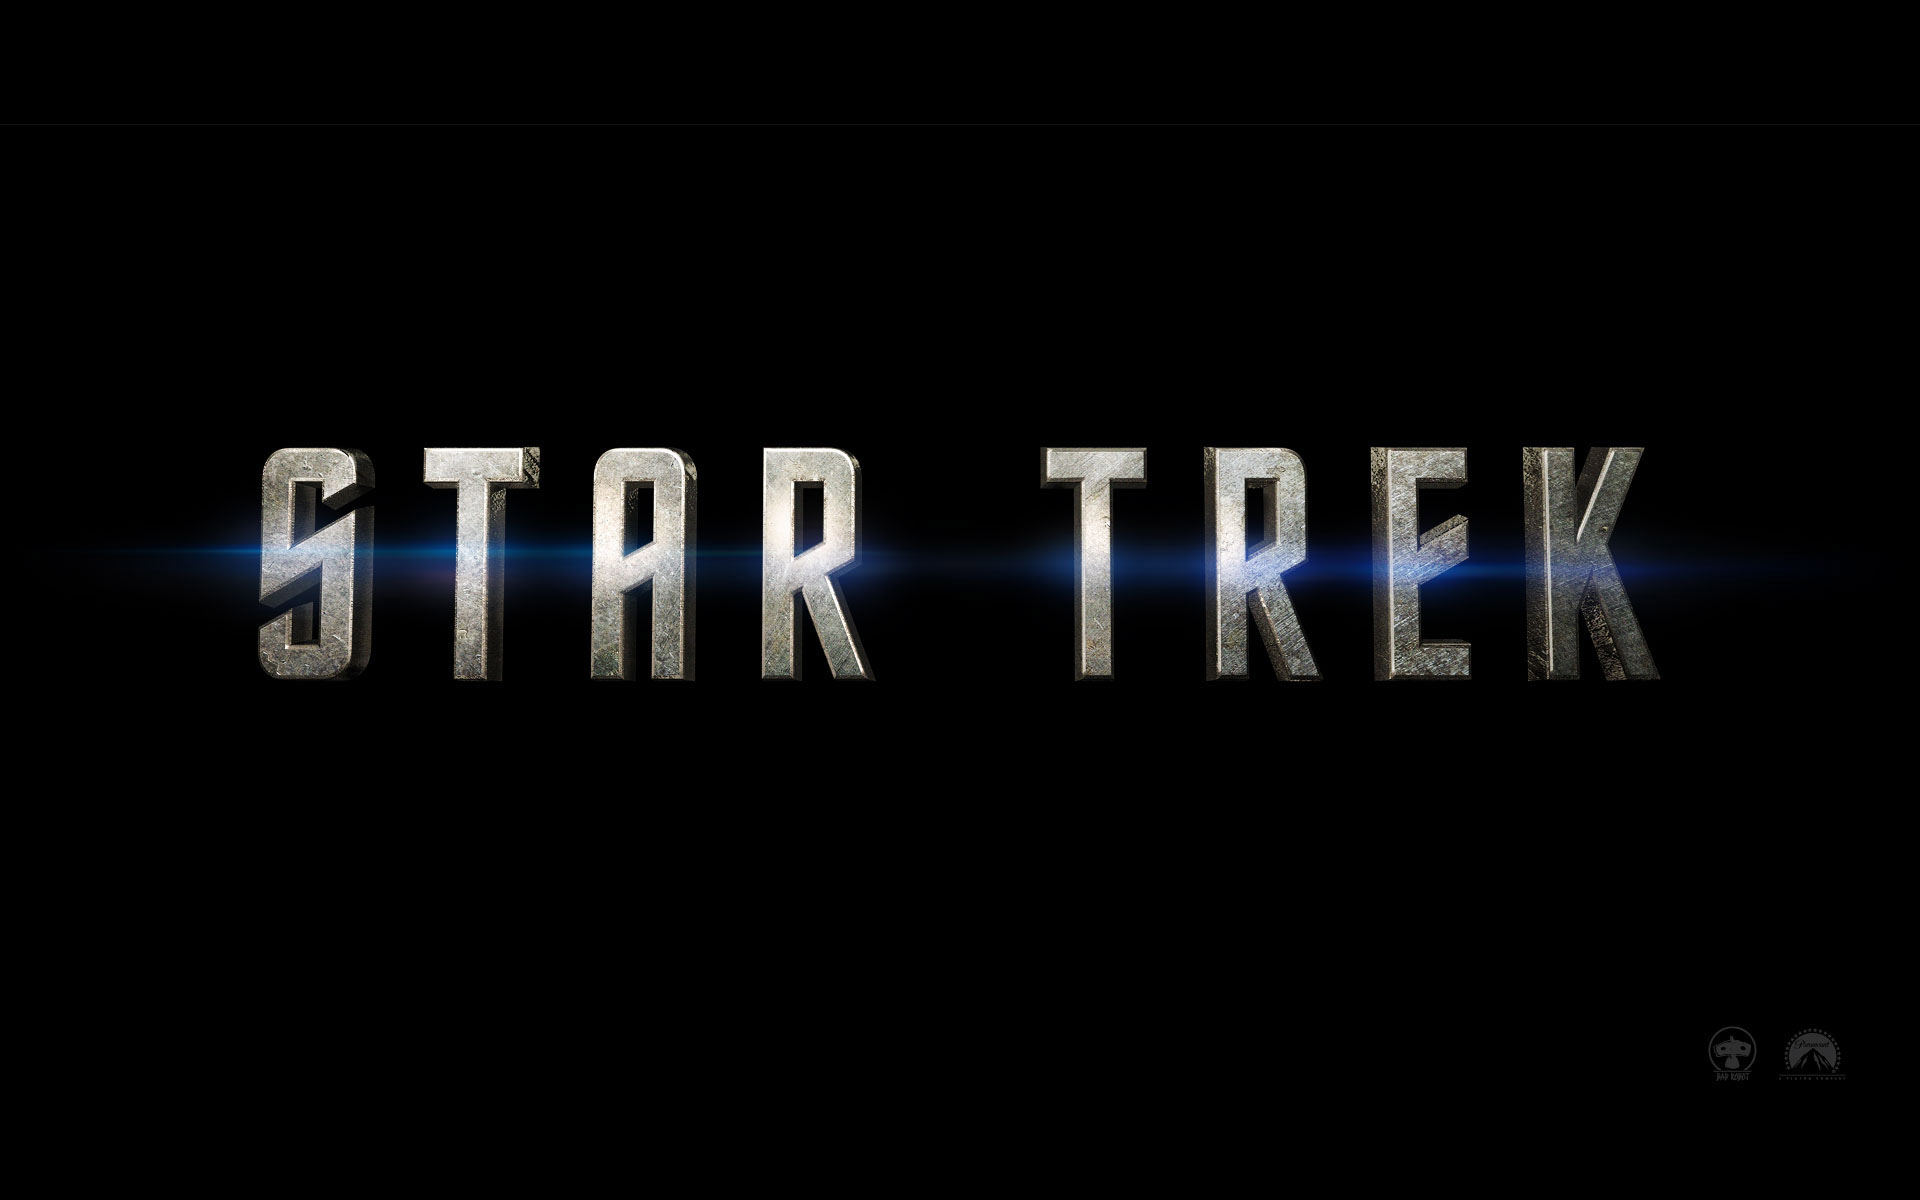 Wallpaper Titre du Film Star Trek